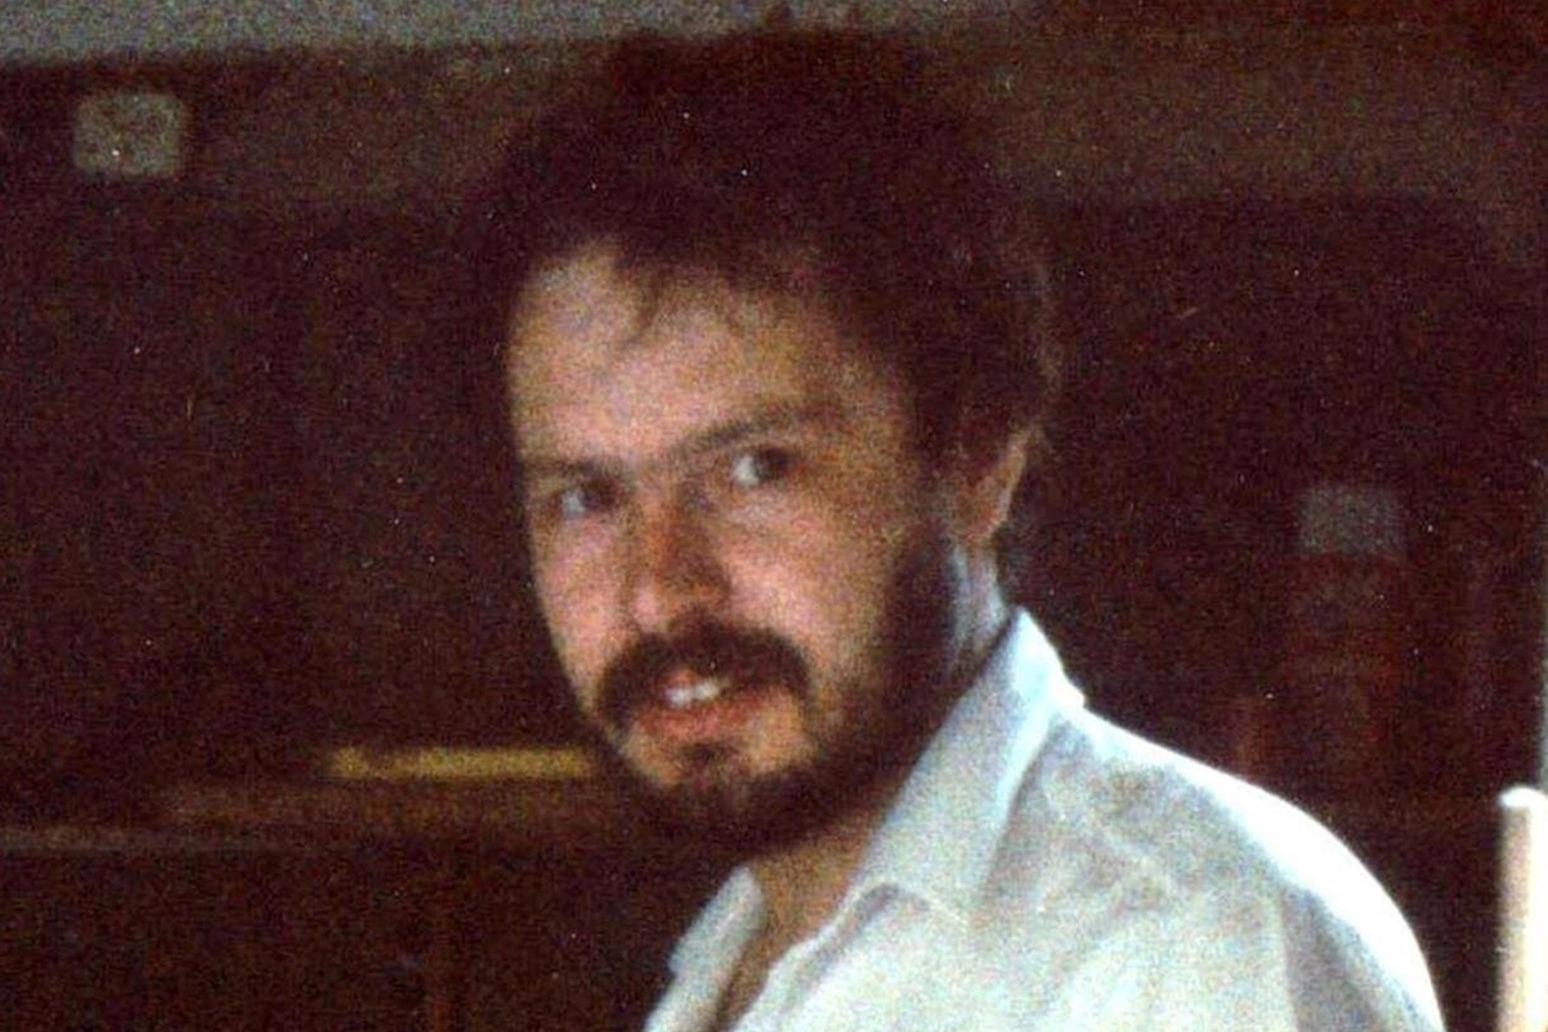 Findings of report into private detective Daniel Morgan's death in 1987 are 'national shame', son says